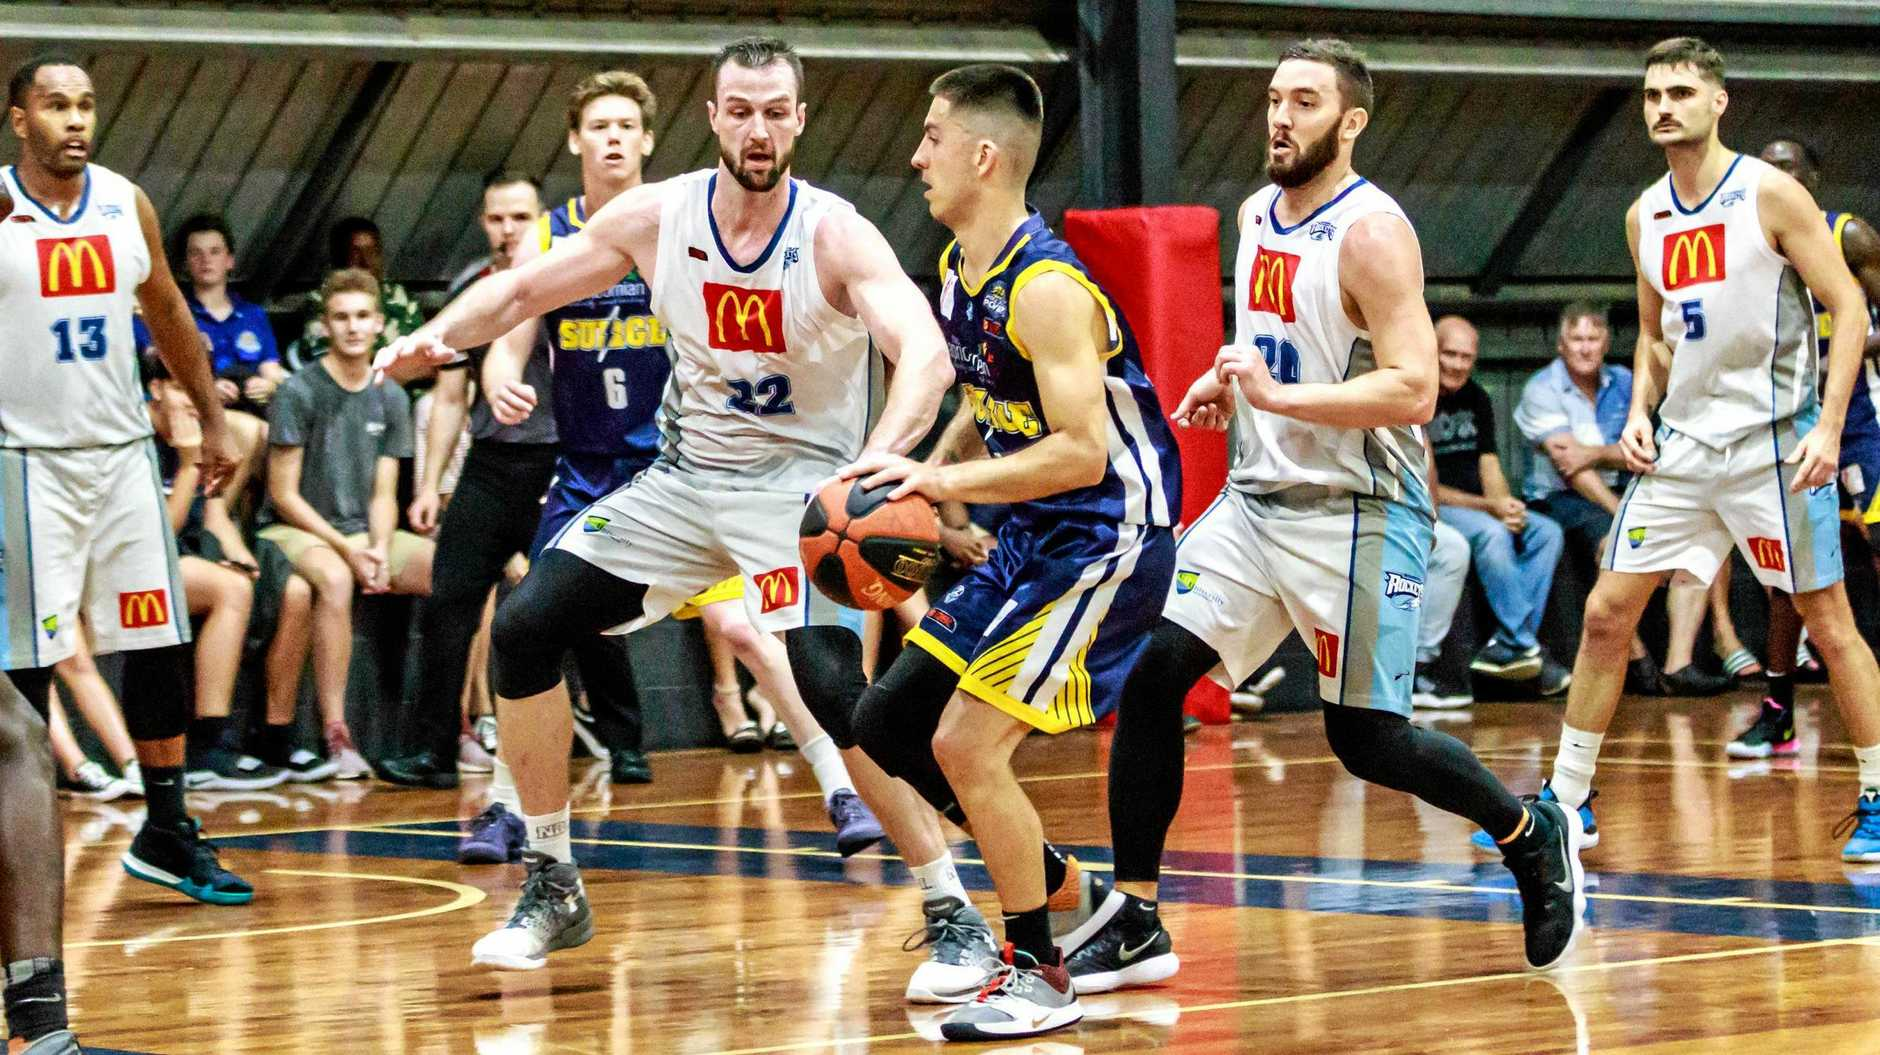 ON THE MOVE: Kyle Tipene takes on star Rockhampton Rocket NBL players Adam Gibson and AJ Ogilvy.